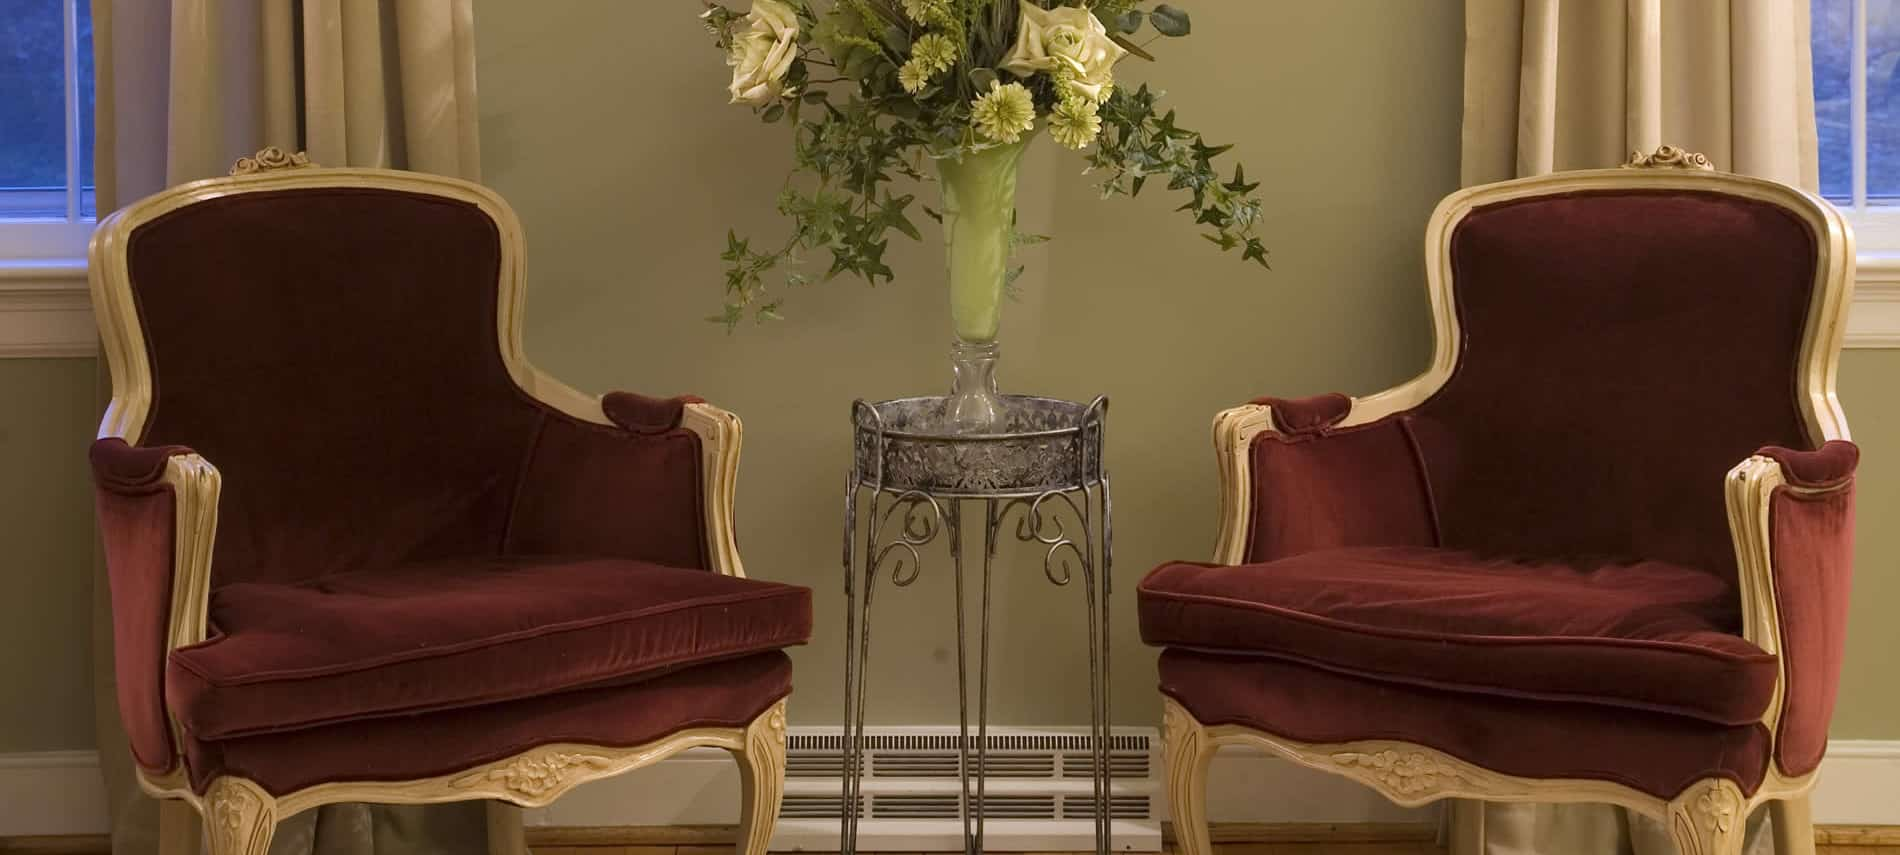 two red velvet ladies French barrel chairs with flower arrangement in middle on metal plant stand